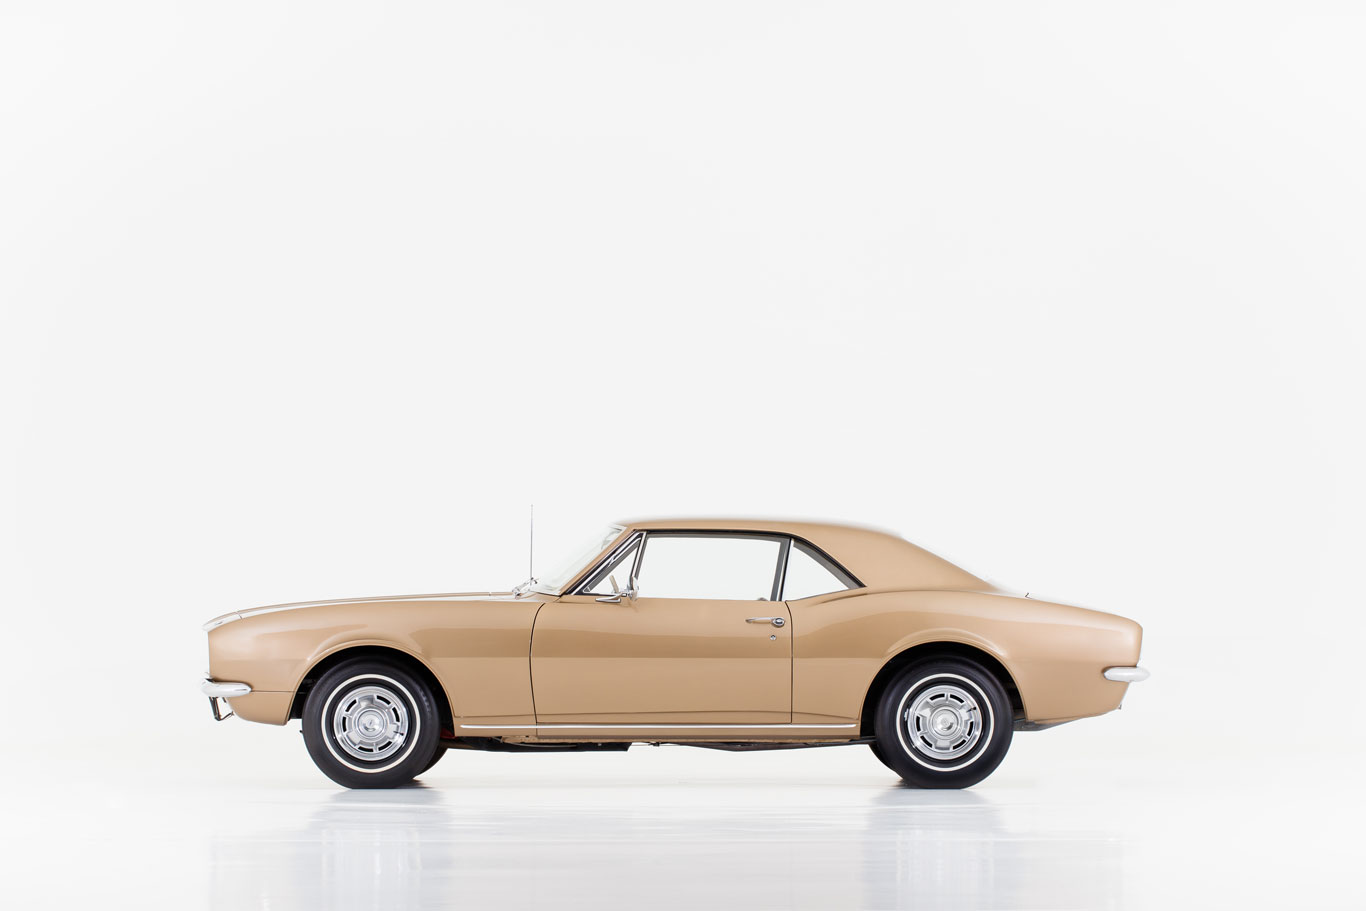 High-resolution photos of the first 1967 Camaro built were taken as part of the documentation process in which the car was added to the National Historic Vehicle Register.